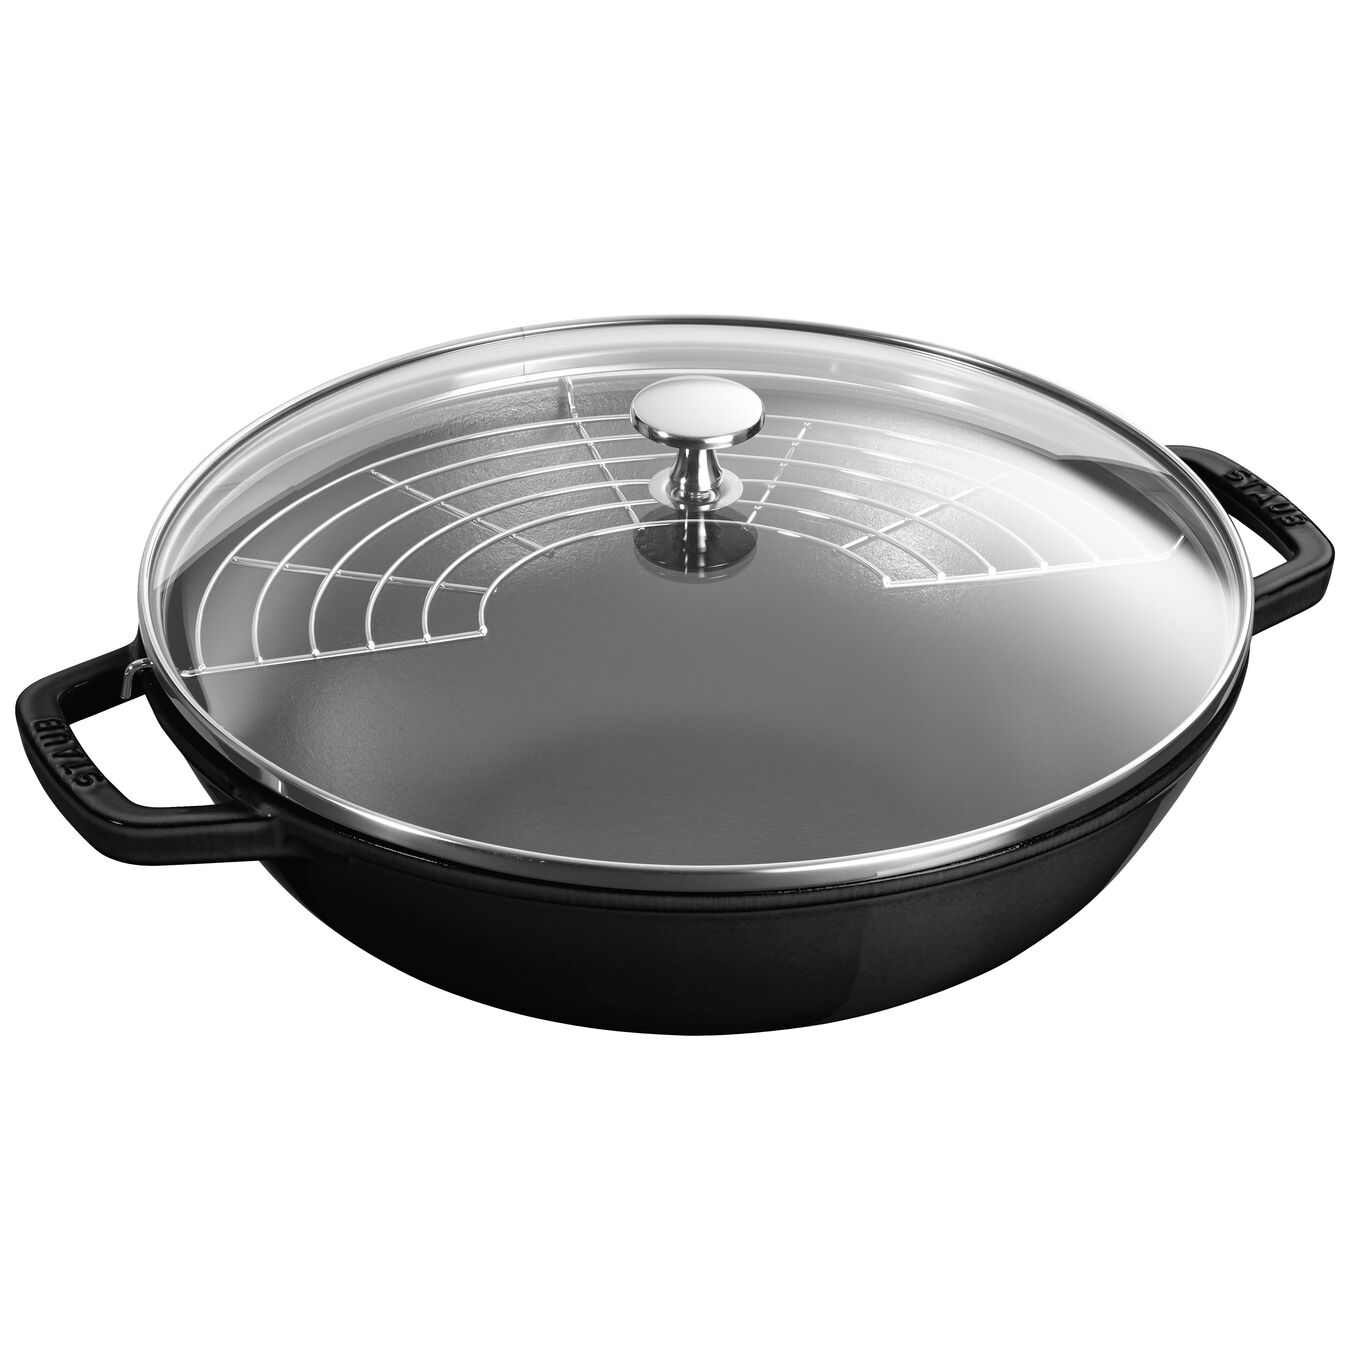 30 cm / 12 inch Wok with glass lid, black,,large 1